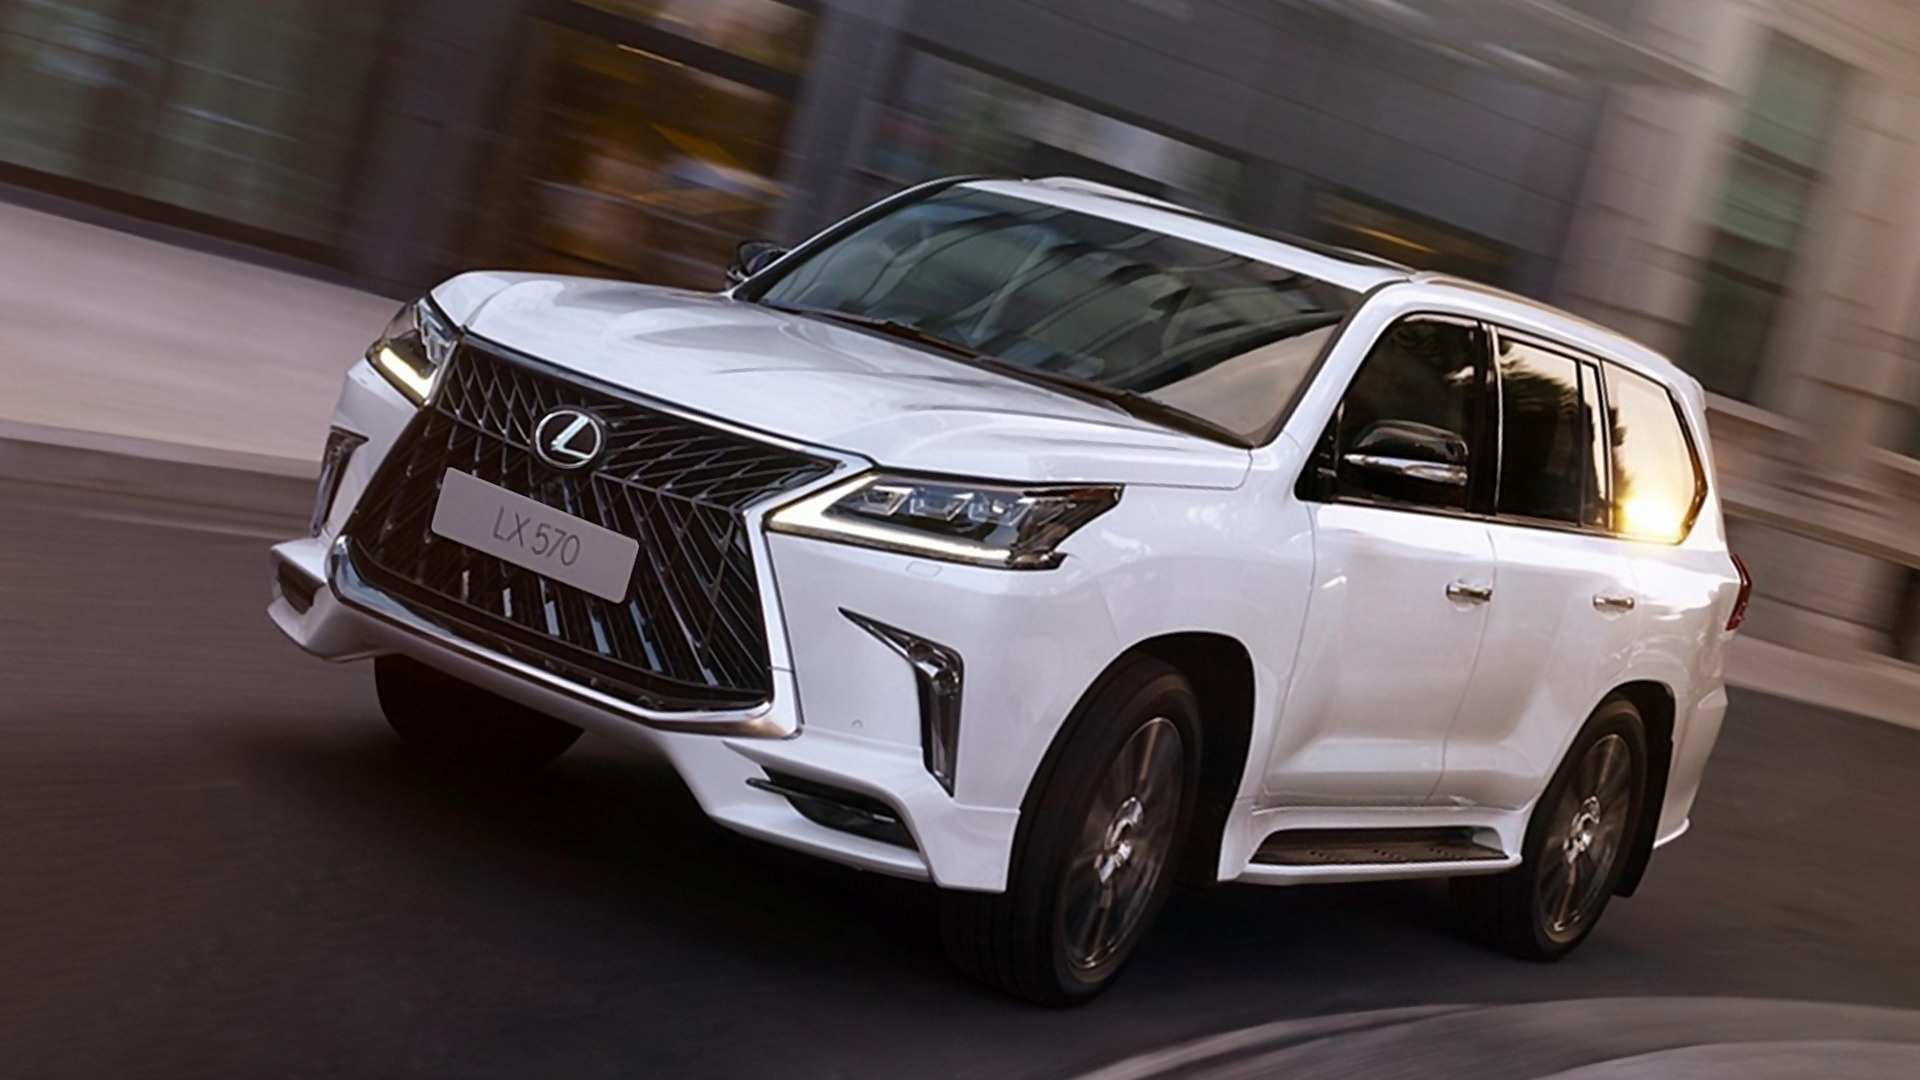 25 New 2019 Lexus Lx 570 Release Date Concept with 2019 Lexus Lx 570 Release Date